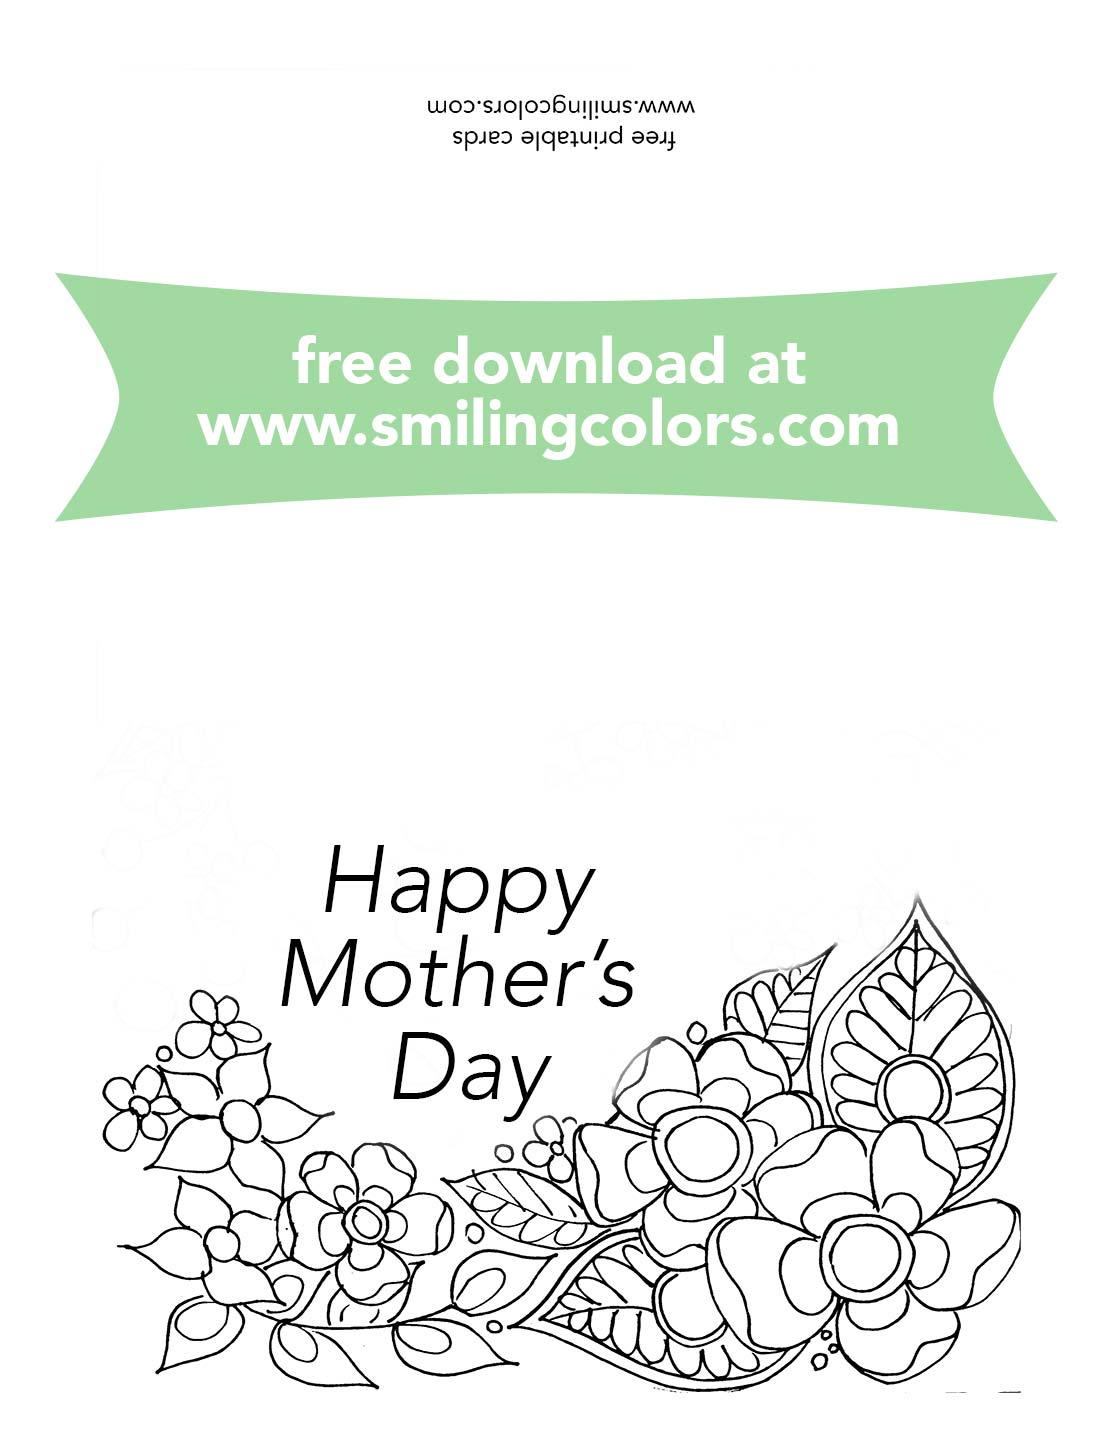 image about Printable Cards to Color identified as Moms working day coloring playing cards, Cost-free in direction of print and colour presently